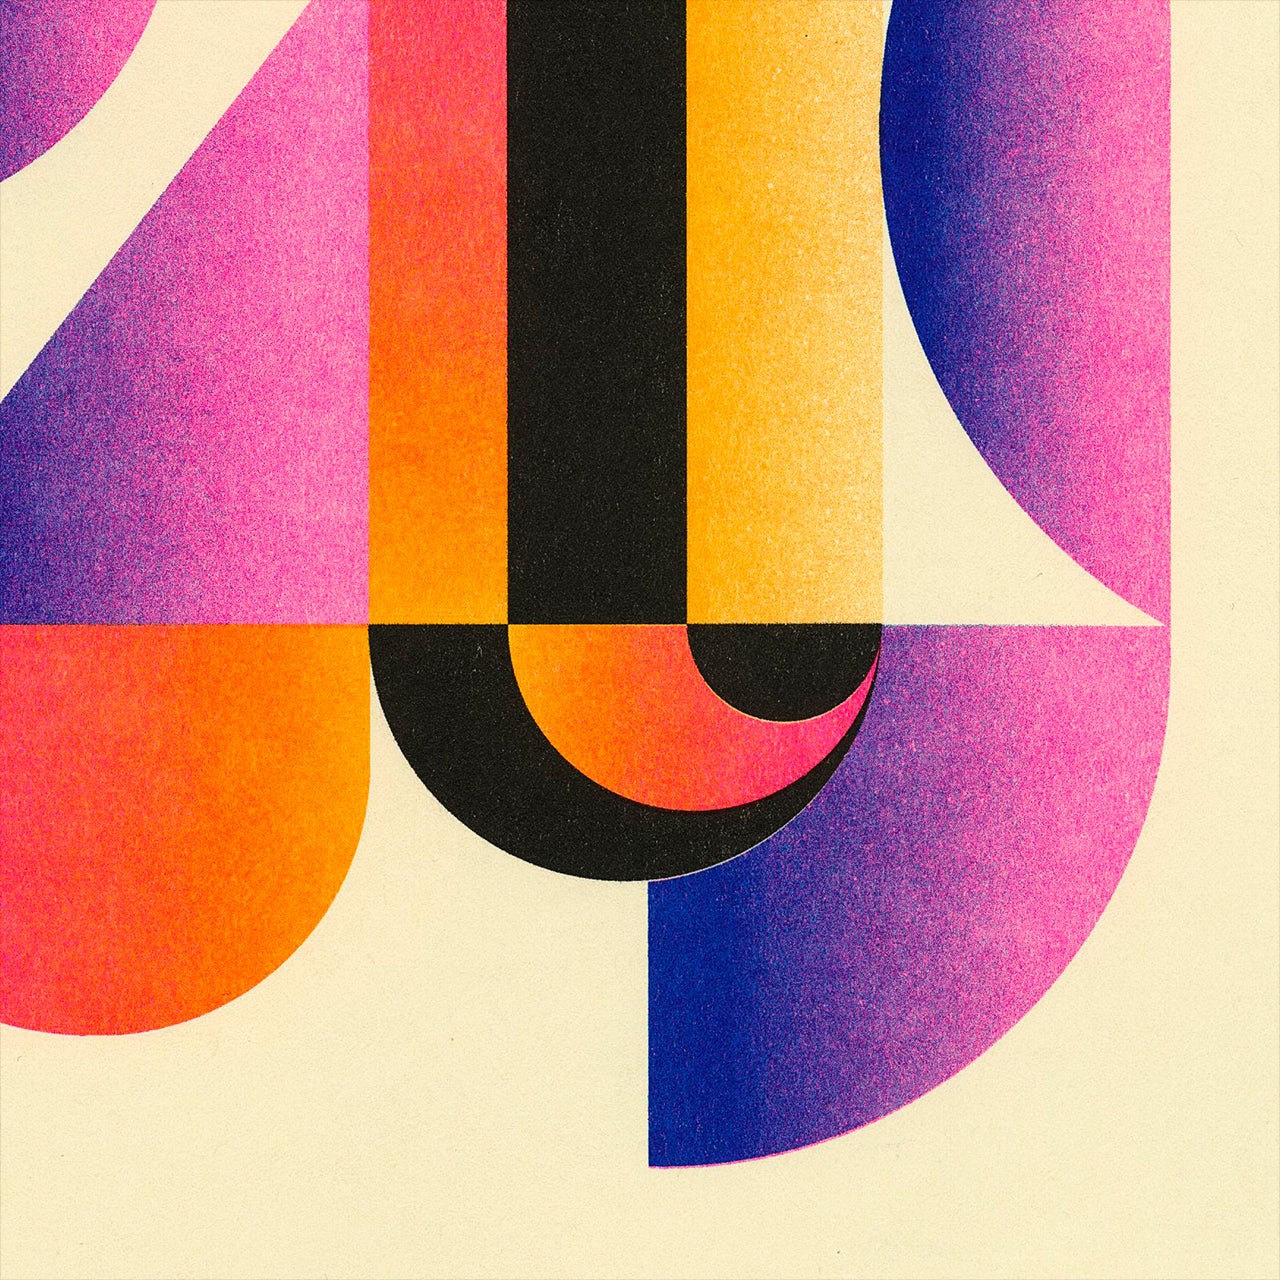 Upclose detail of a Riso print by Jessie and Katey with geometric shapes